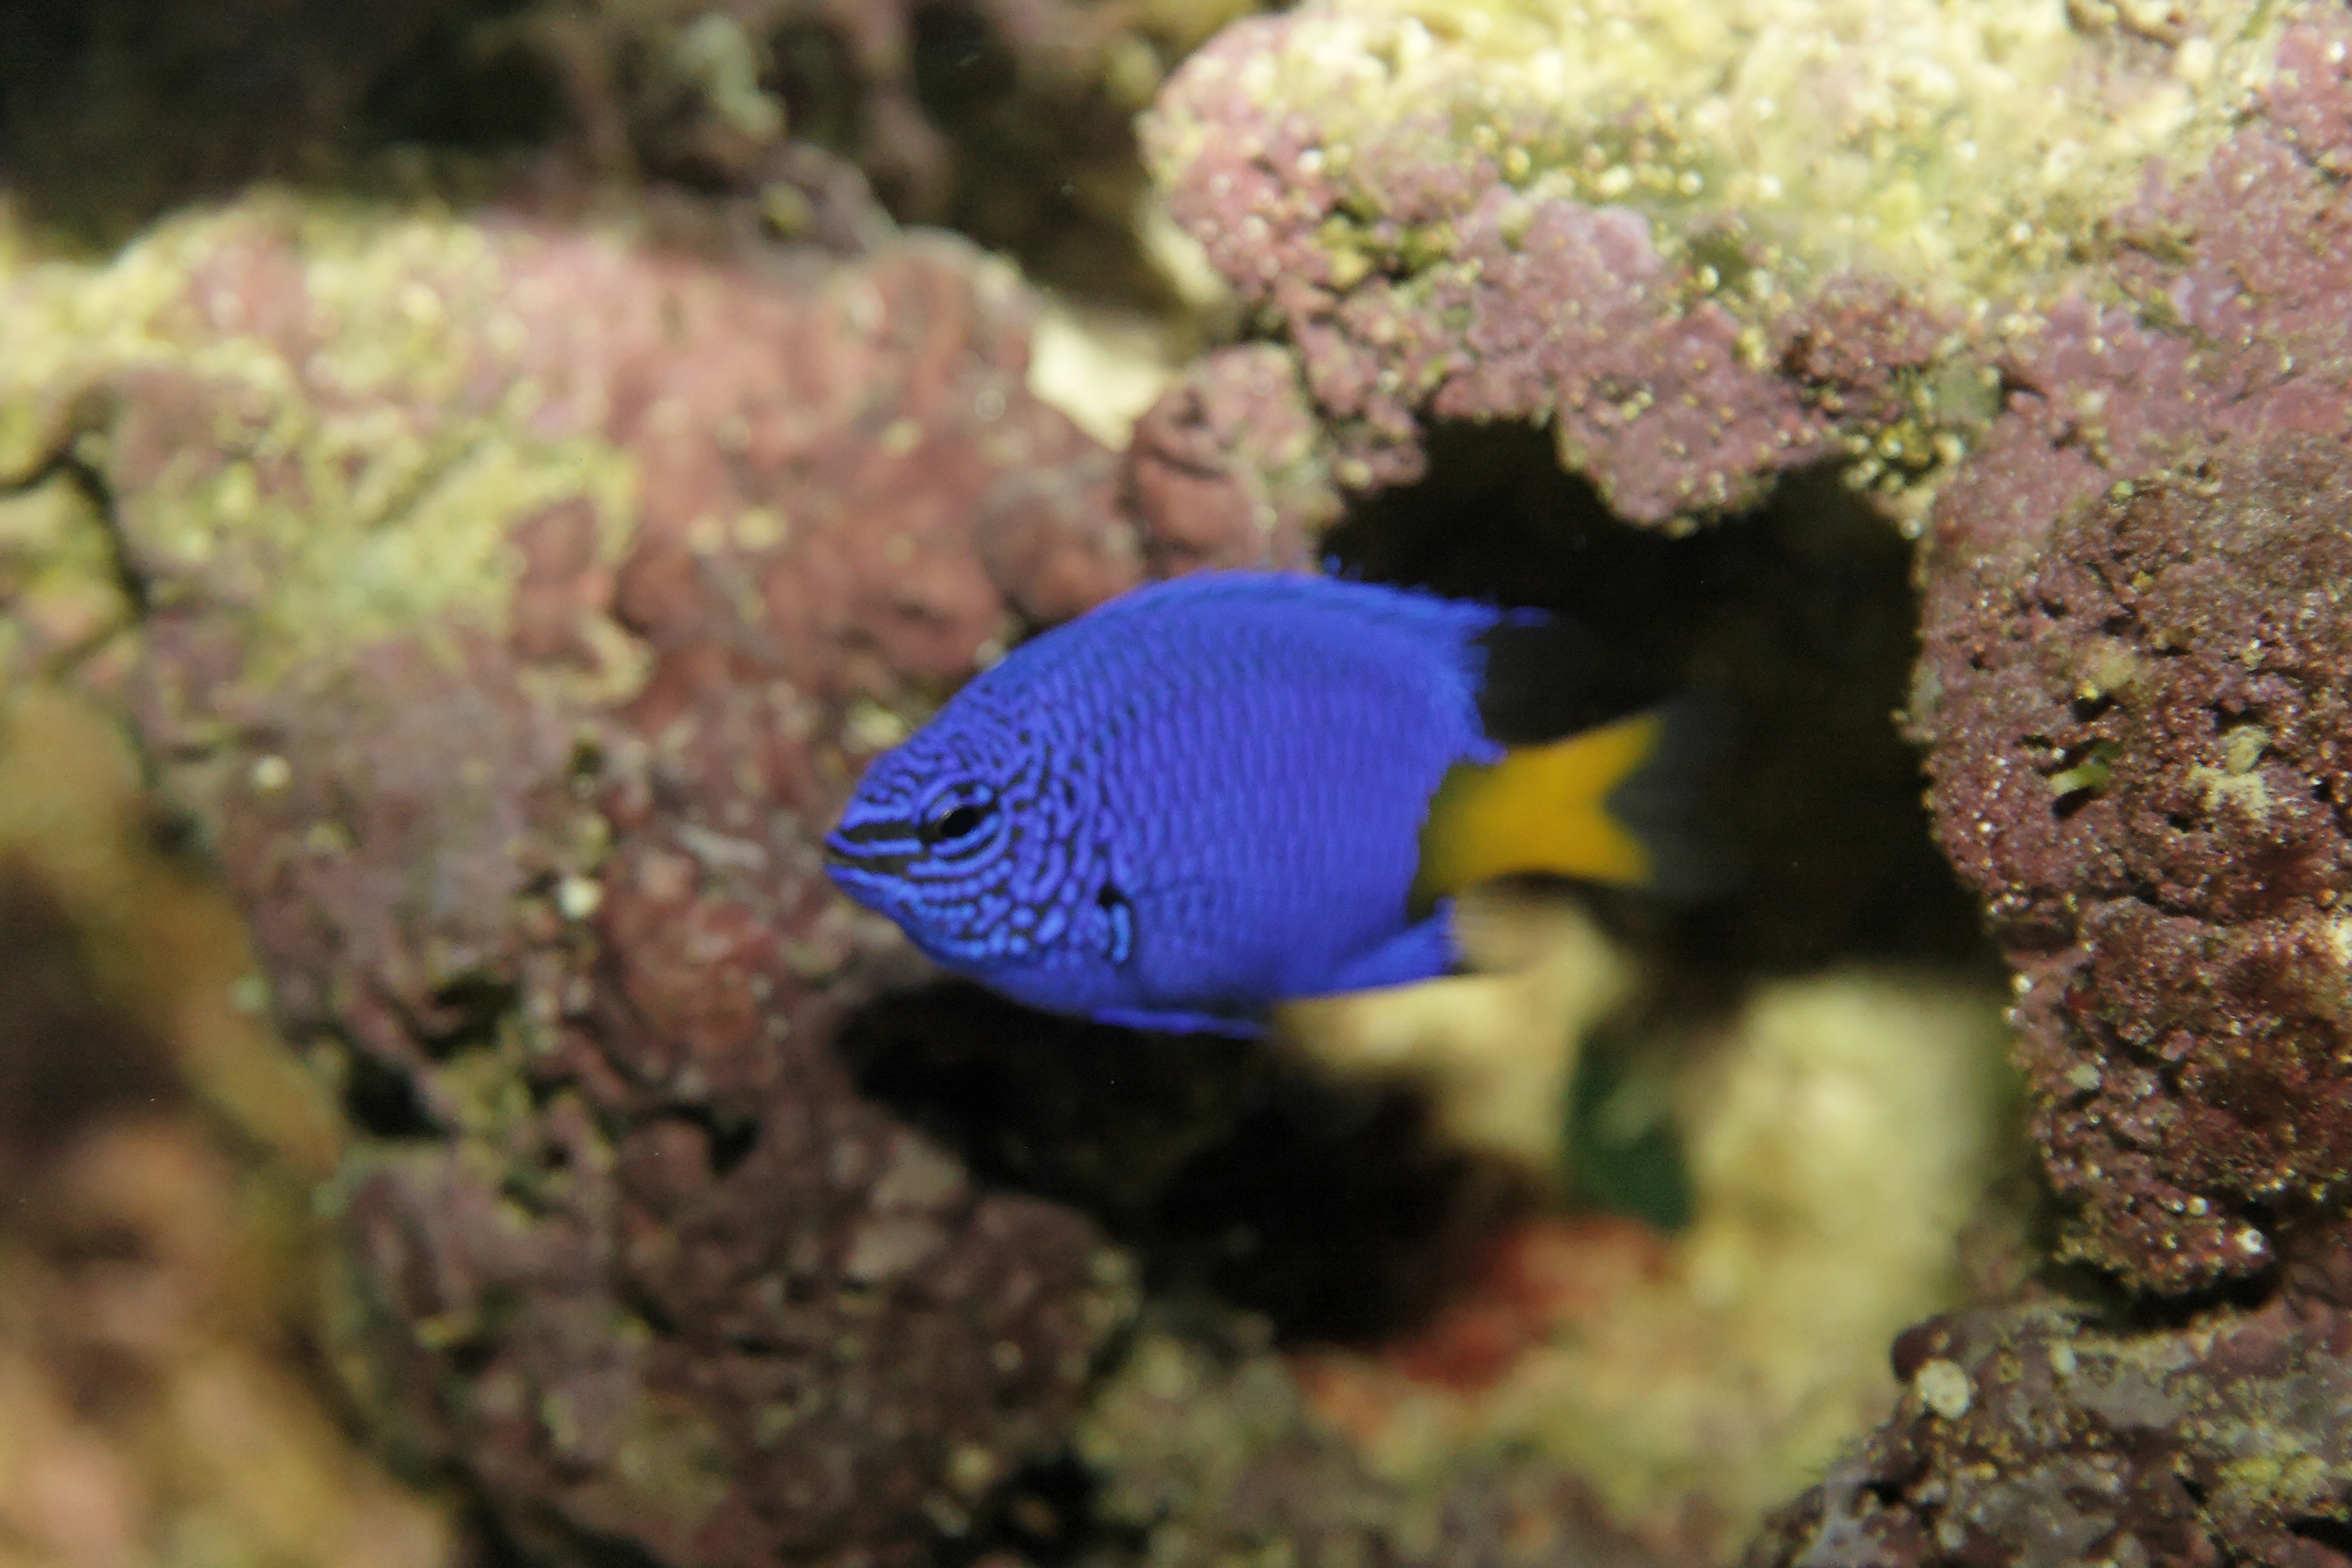 Chrysptera parasema (yellowtail blue damselfish), Aquarium.jpg - Chrysptera parasema (yellowtail blue damselfish)